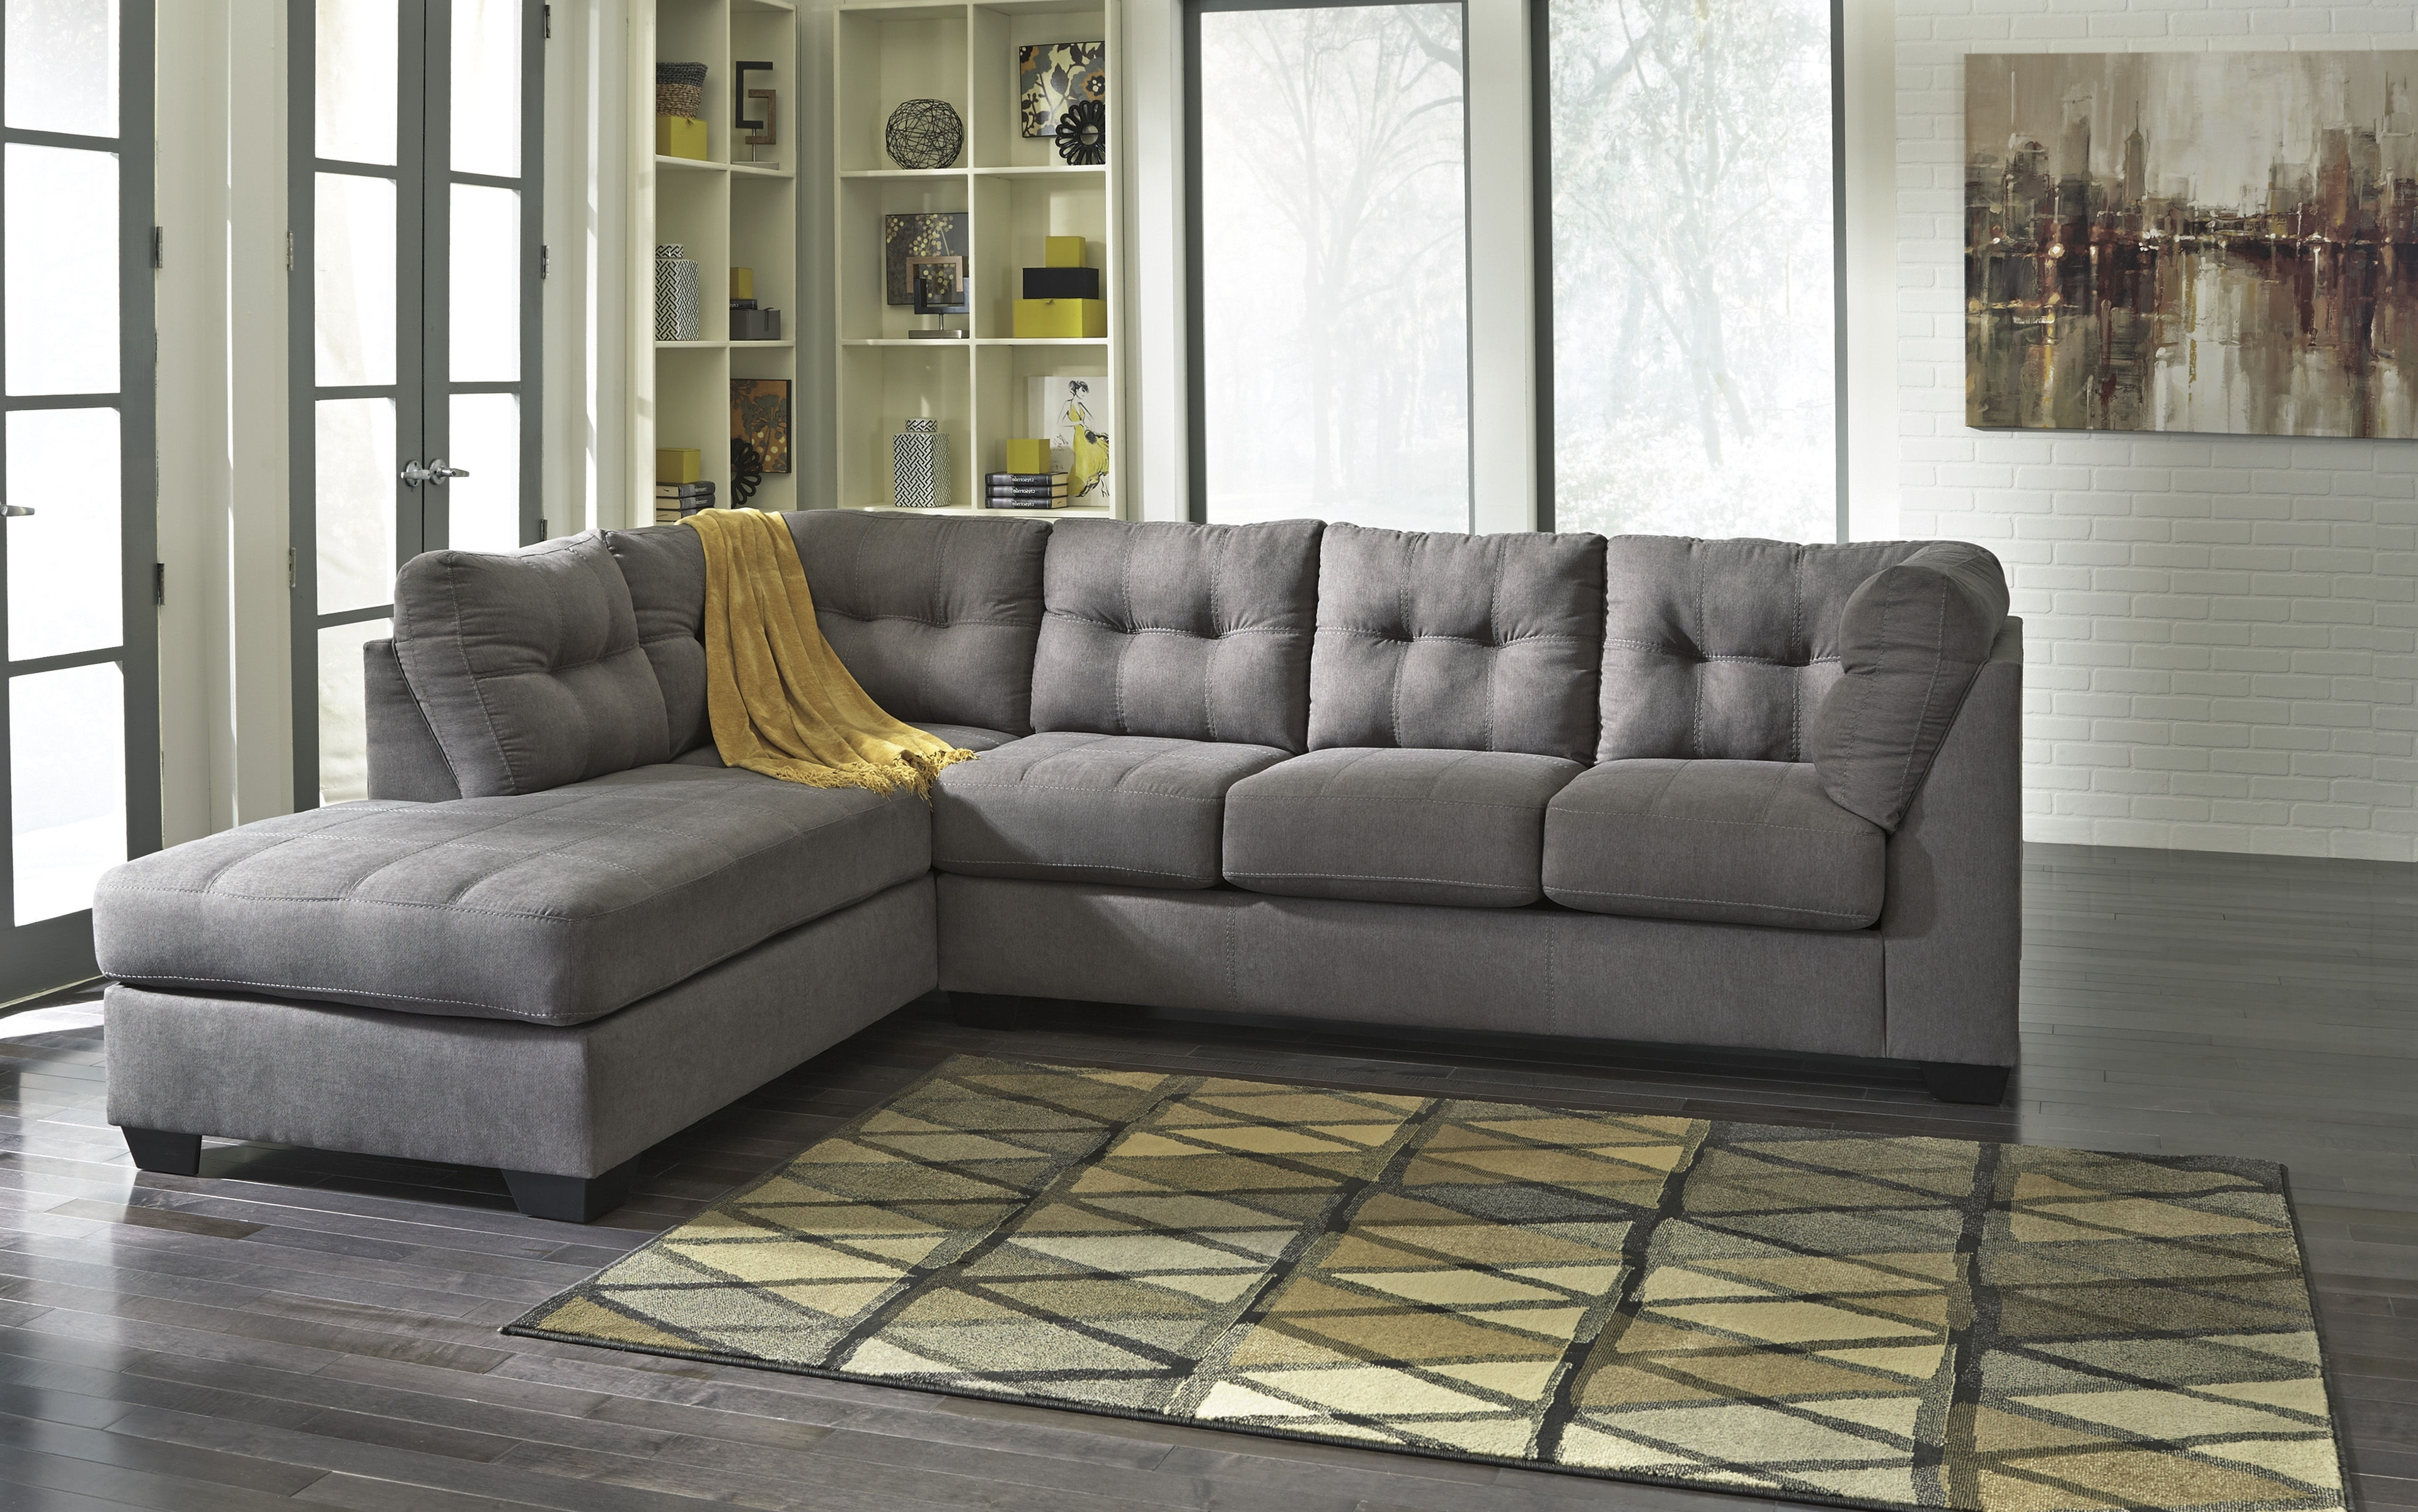 The Classy Home Regarding Sectional Sofas That Come In Pieces (View 5 of 20)